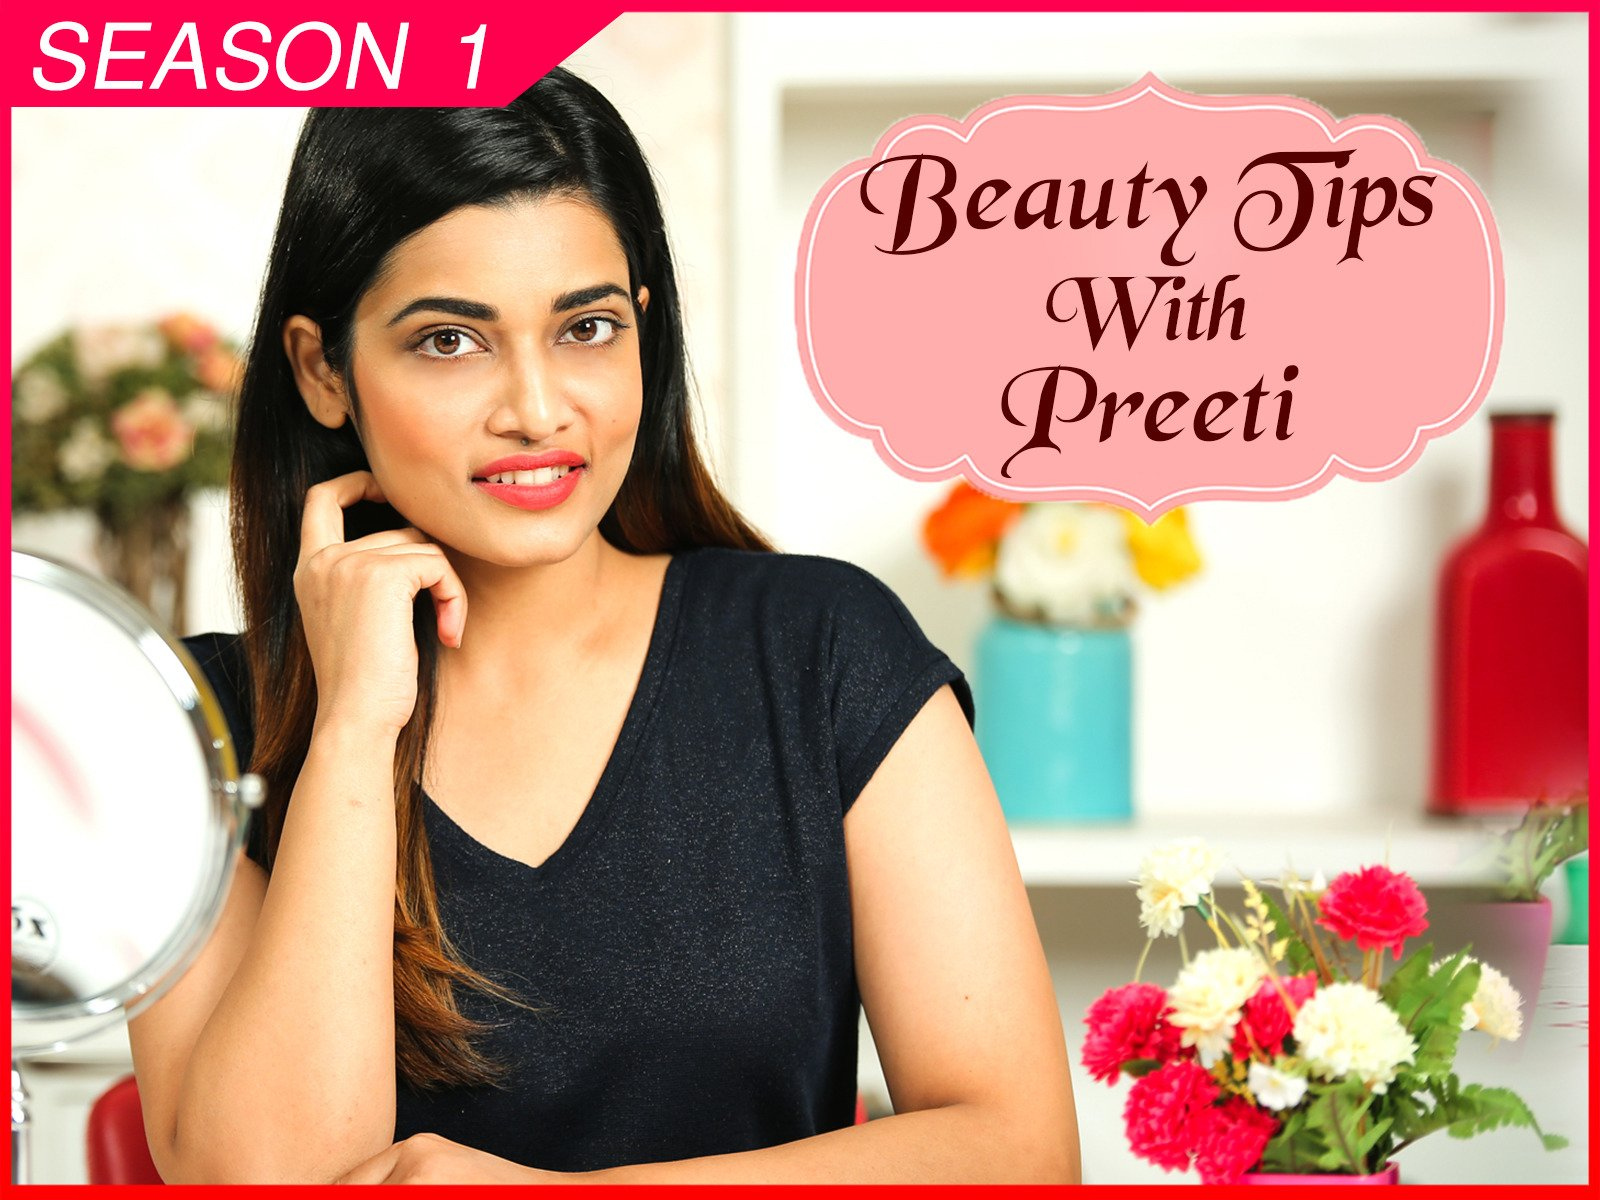 Beauty Tips With Preeti - Season 1